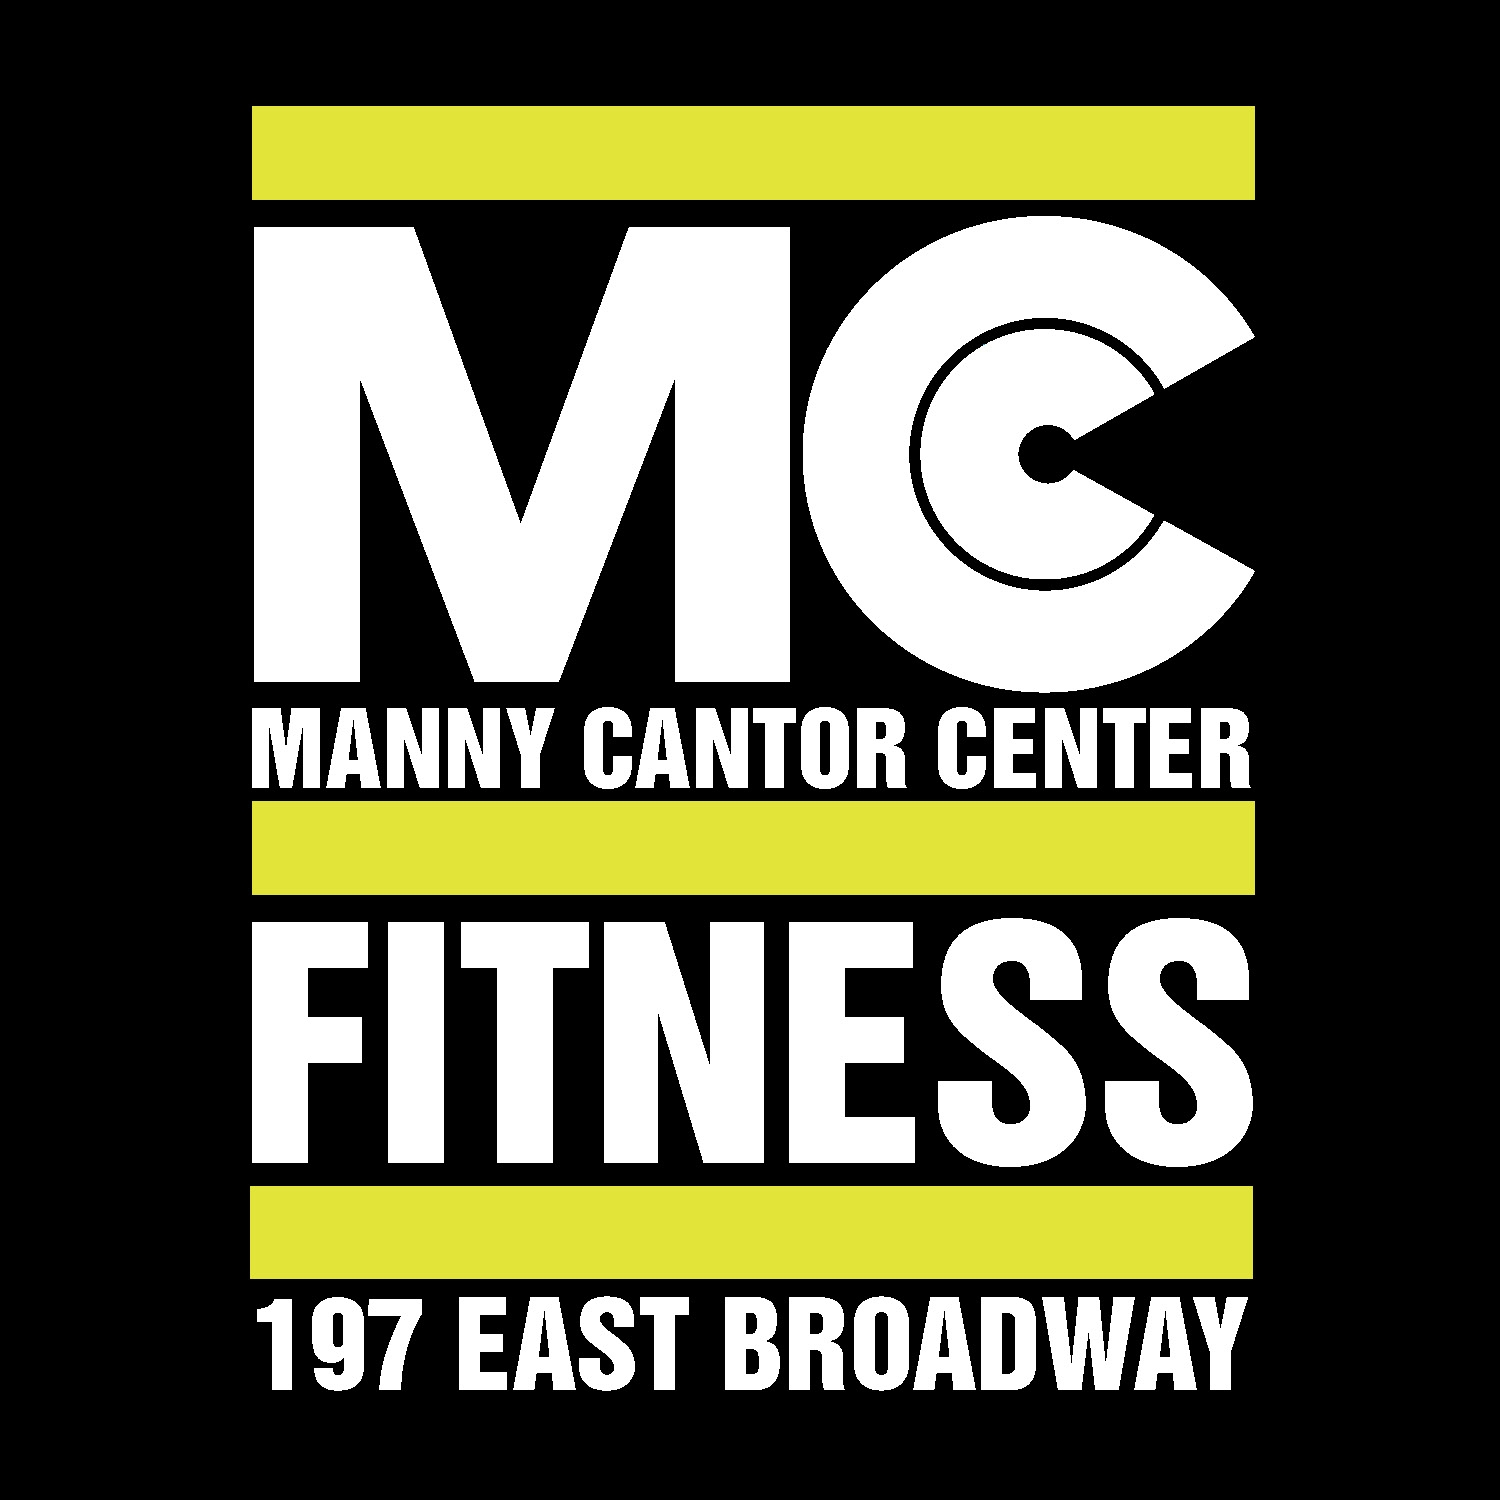 Manny Cantor Center Fitness New York Sports Connection